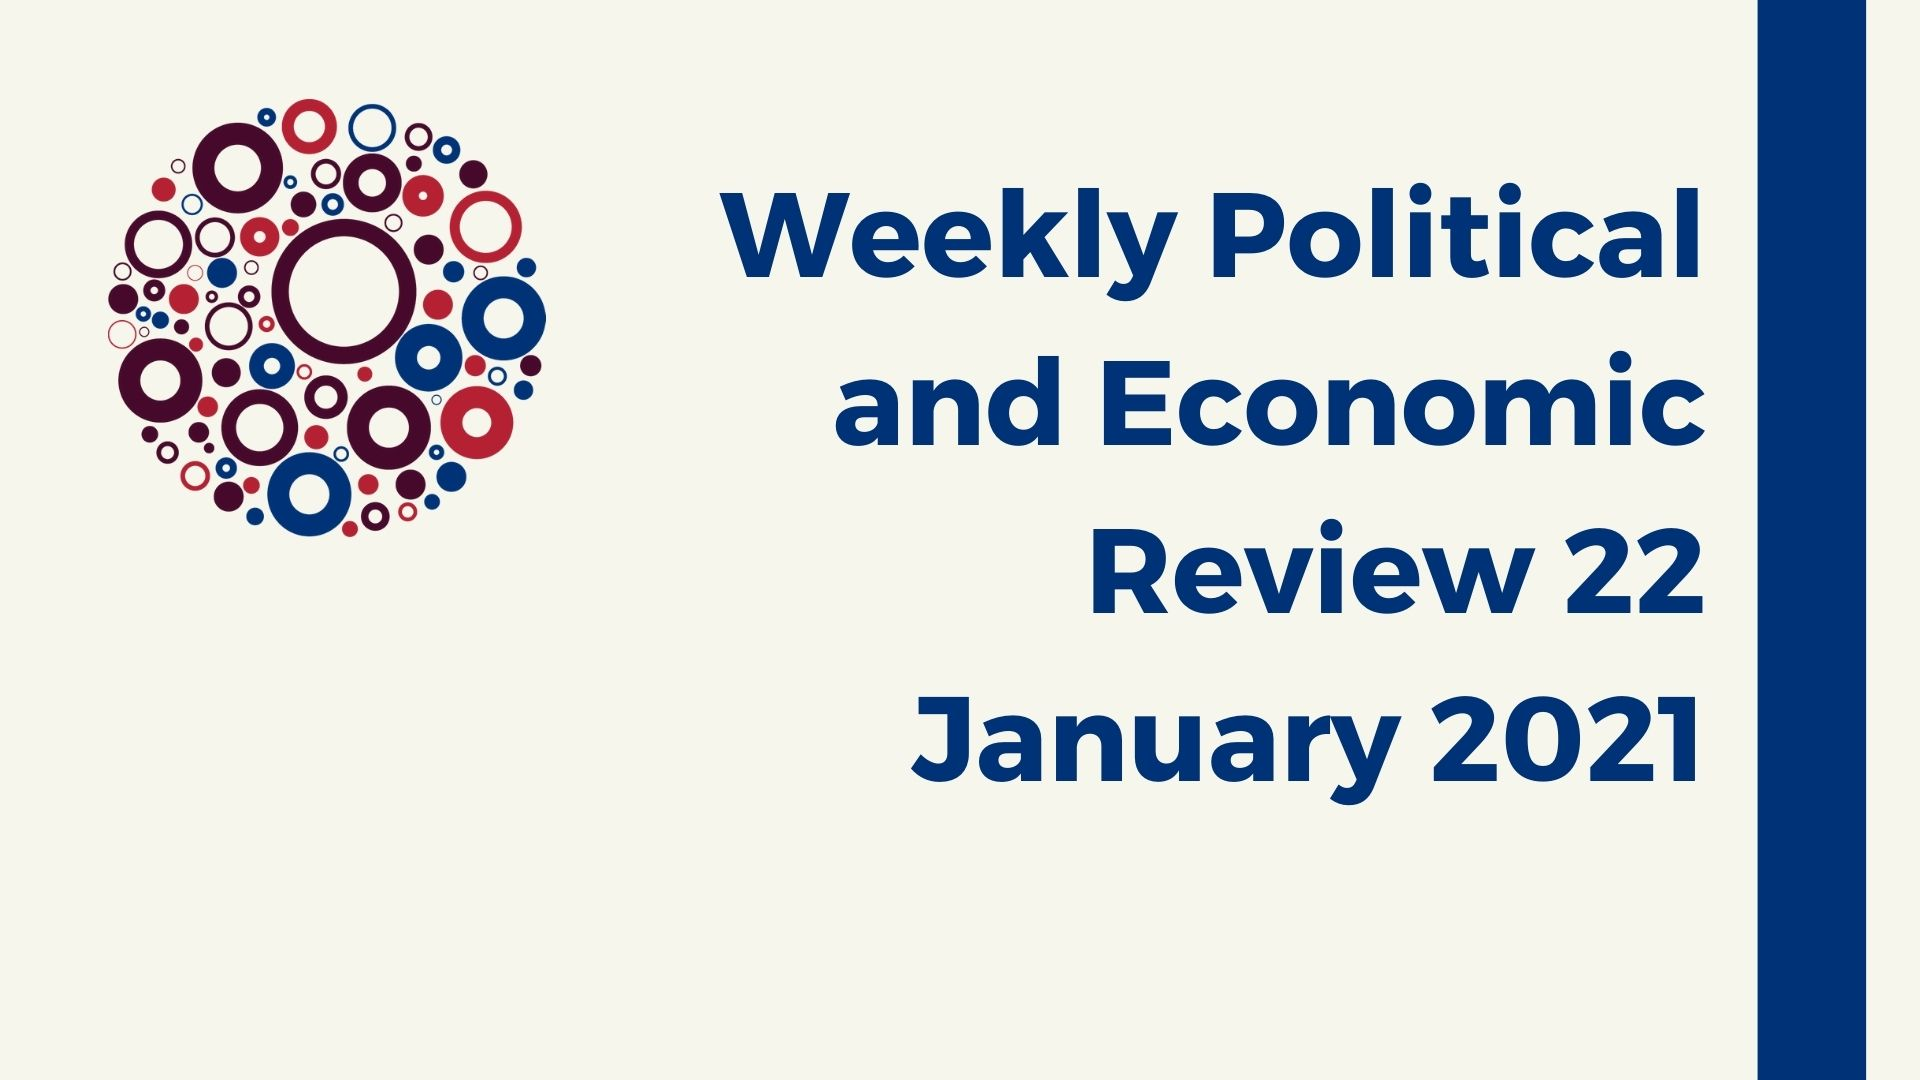 Weekly Political and Economic Review 22 January 20221